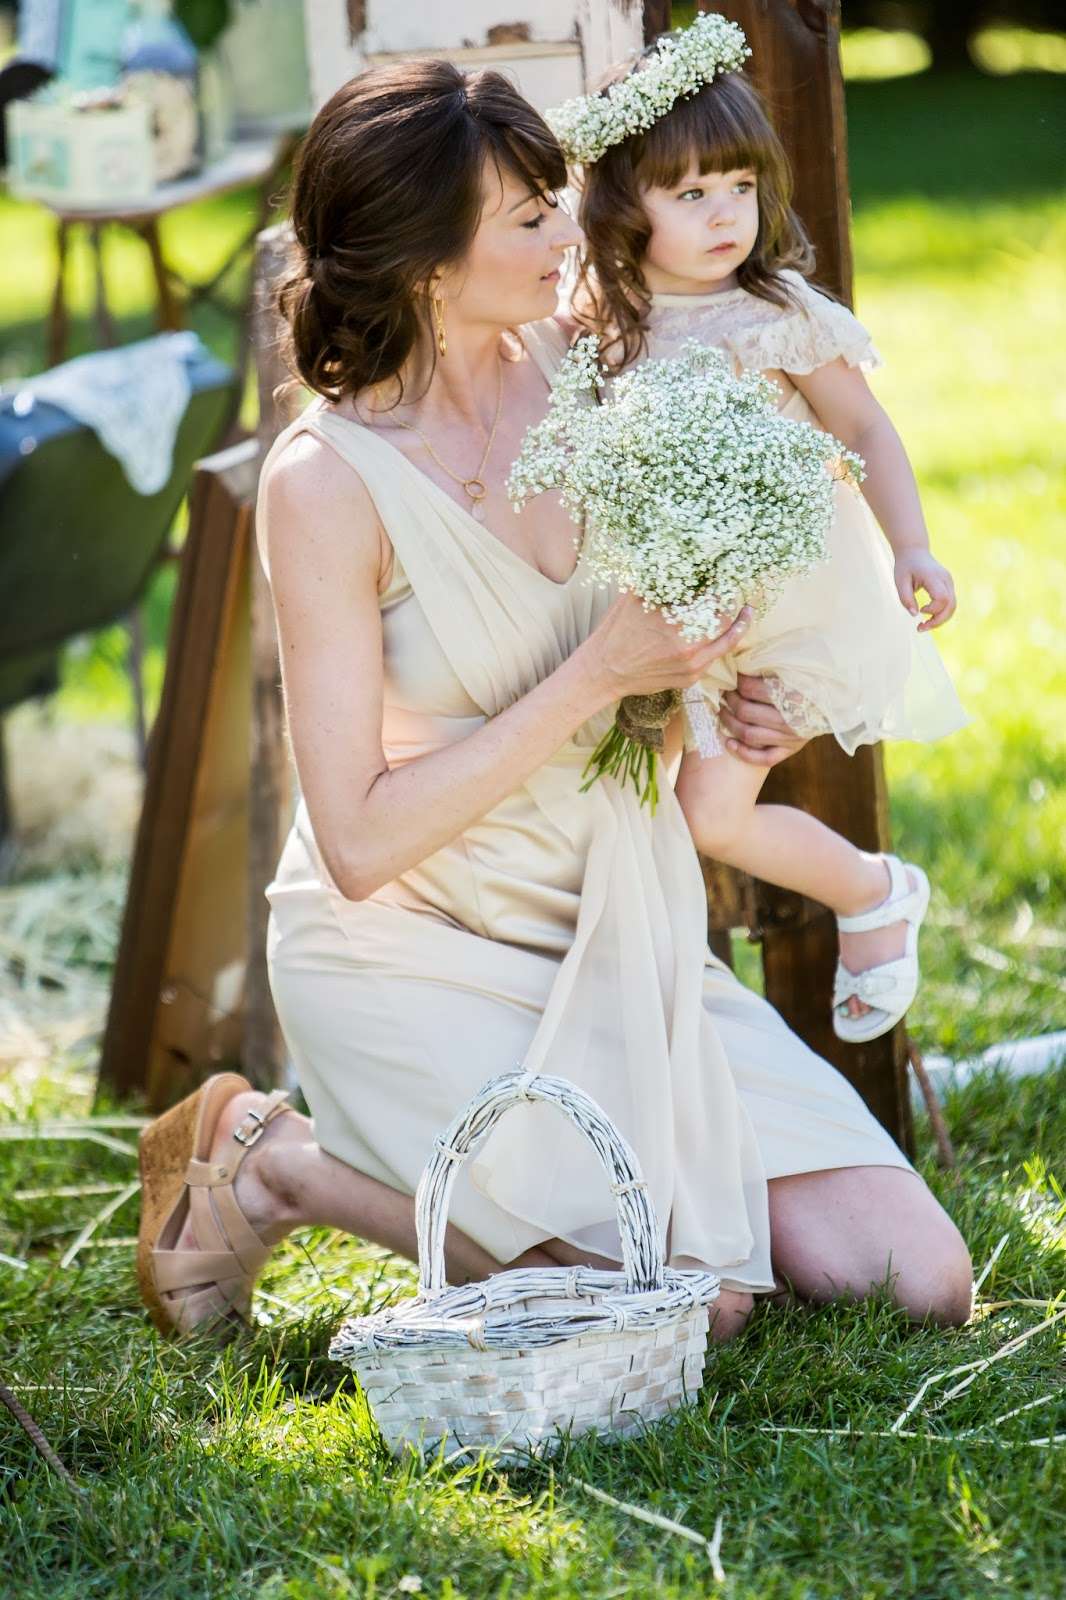 bridesmaid holding flower girl and a bouquet of flowers